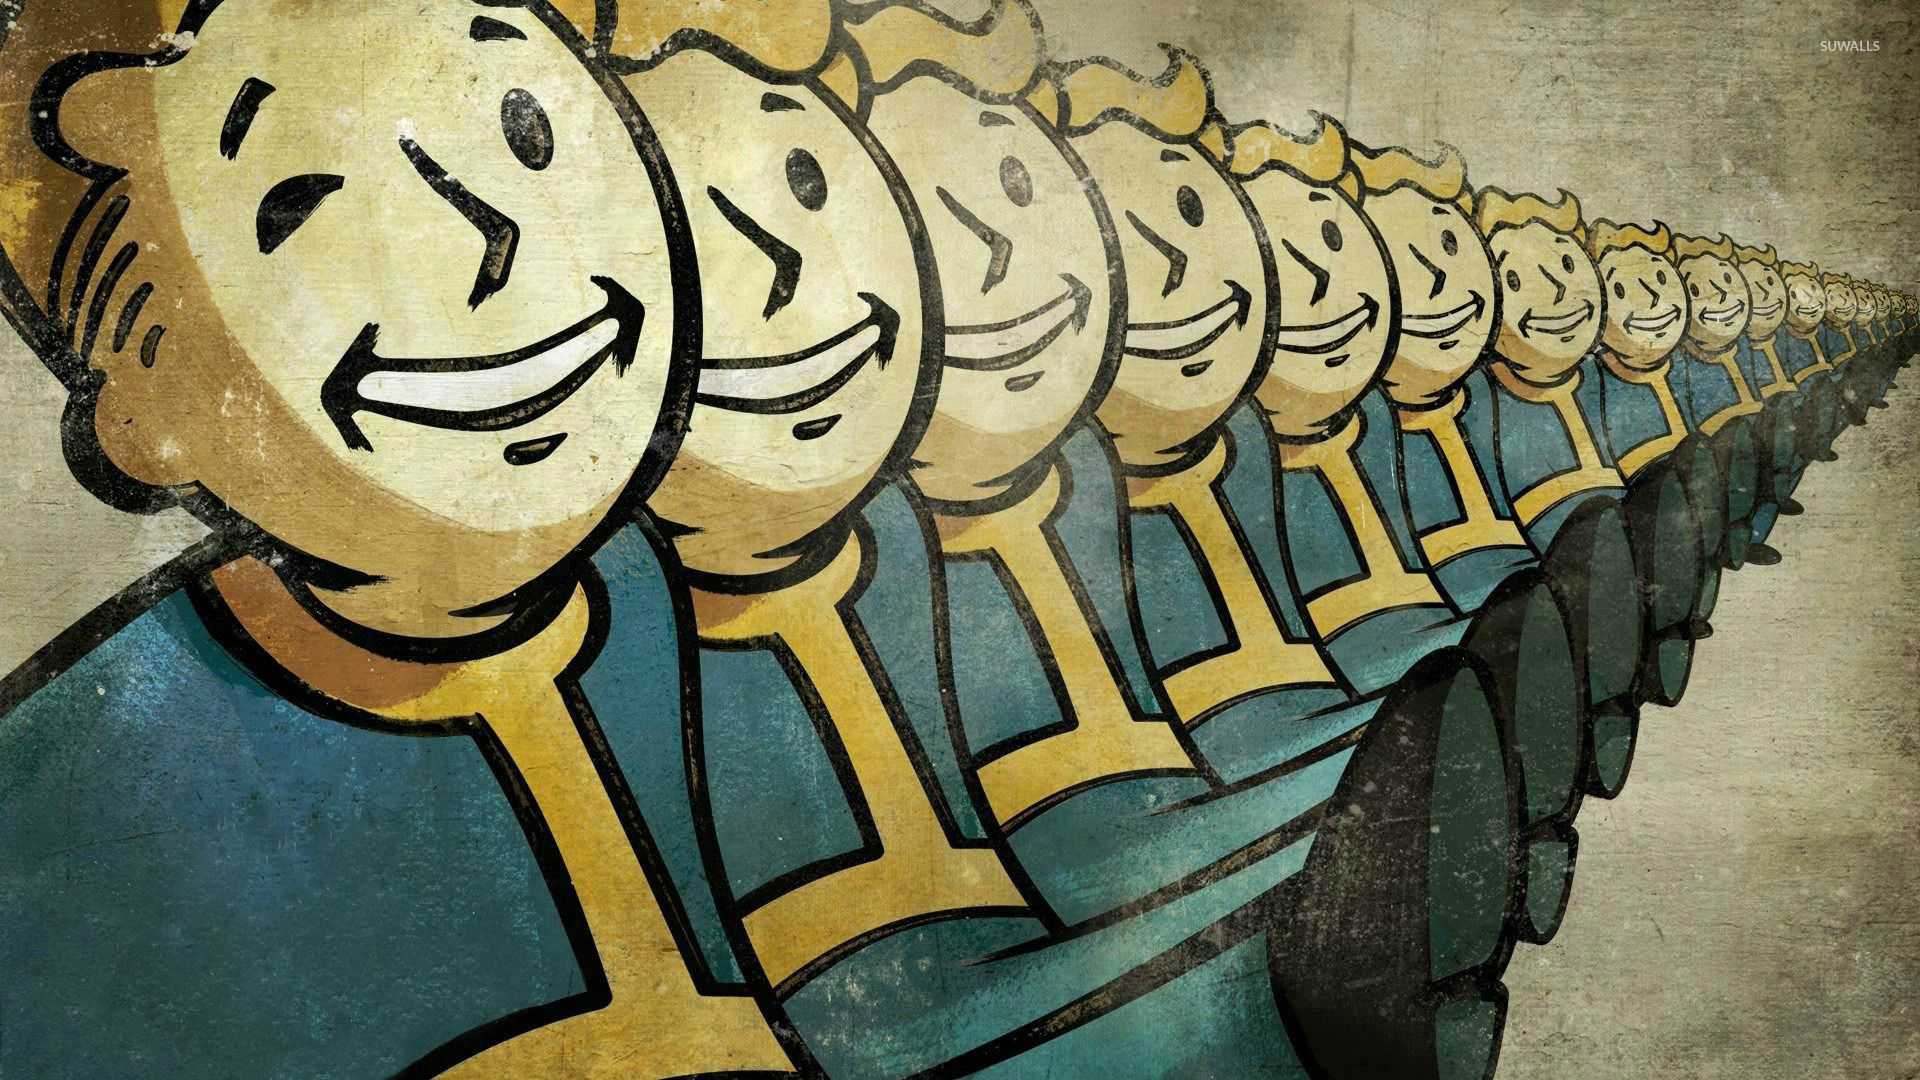 Vault Boy Fallout 7 Wallpaper Game Wallpapers 21093